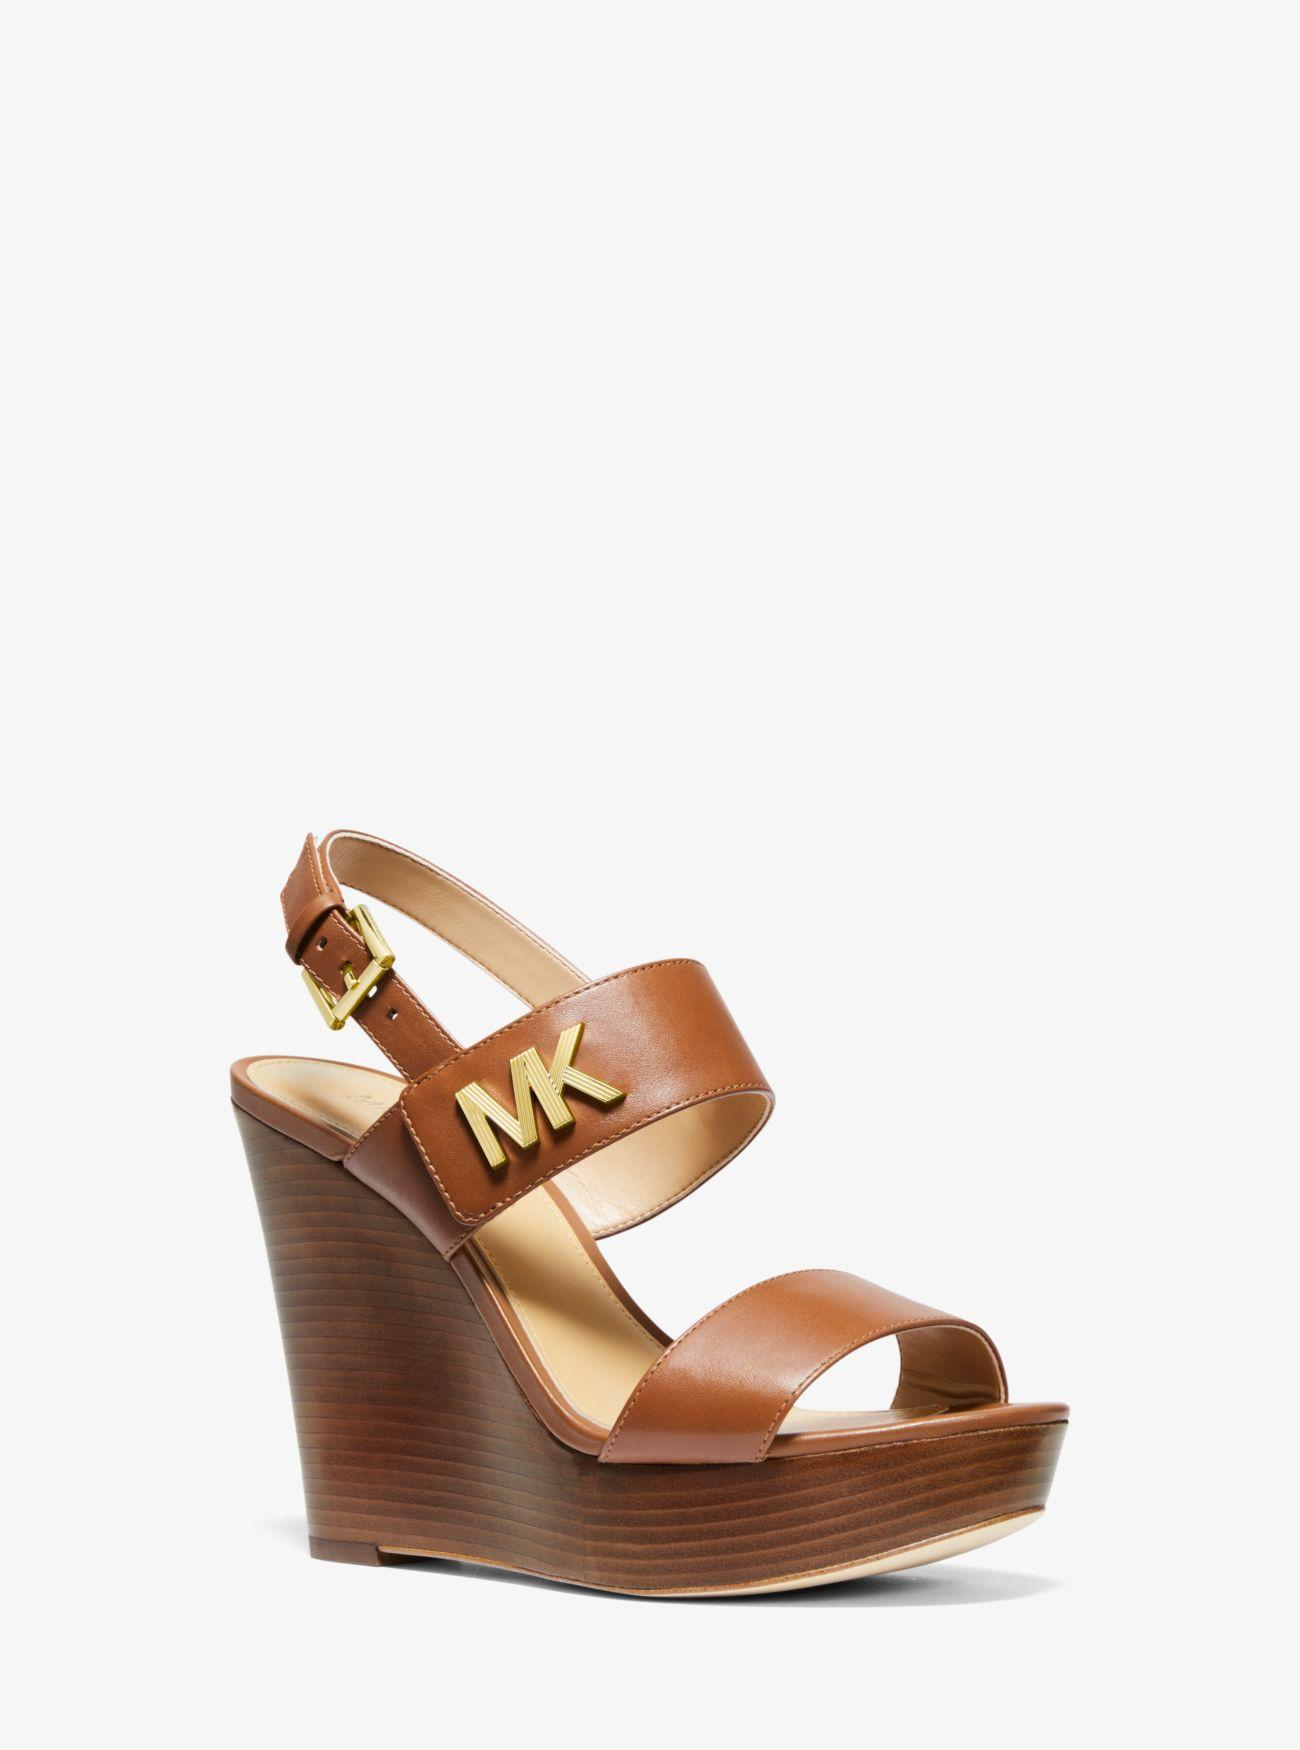 6841c36090 MICHAEL Michael Kors Deanna Leather Wedge in Brown - Lyst